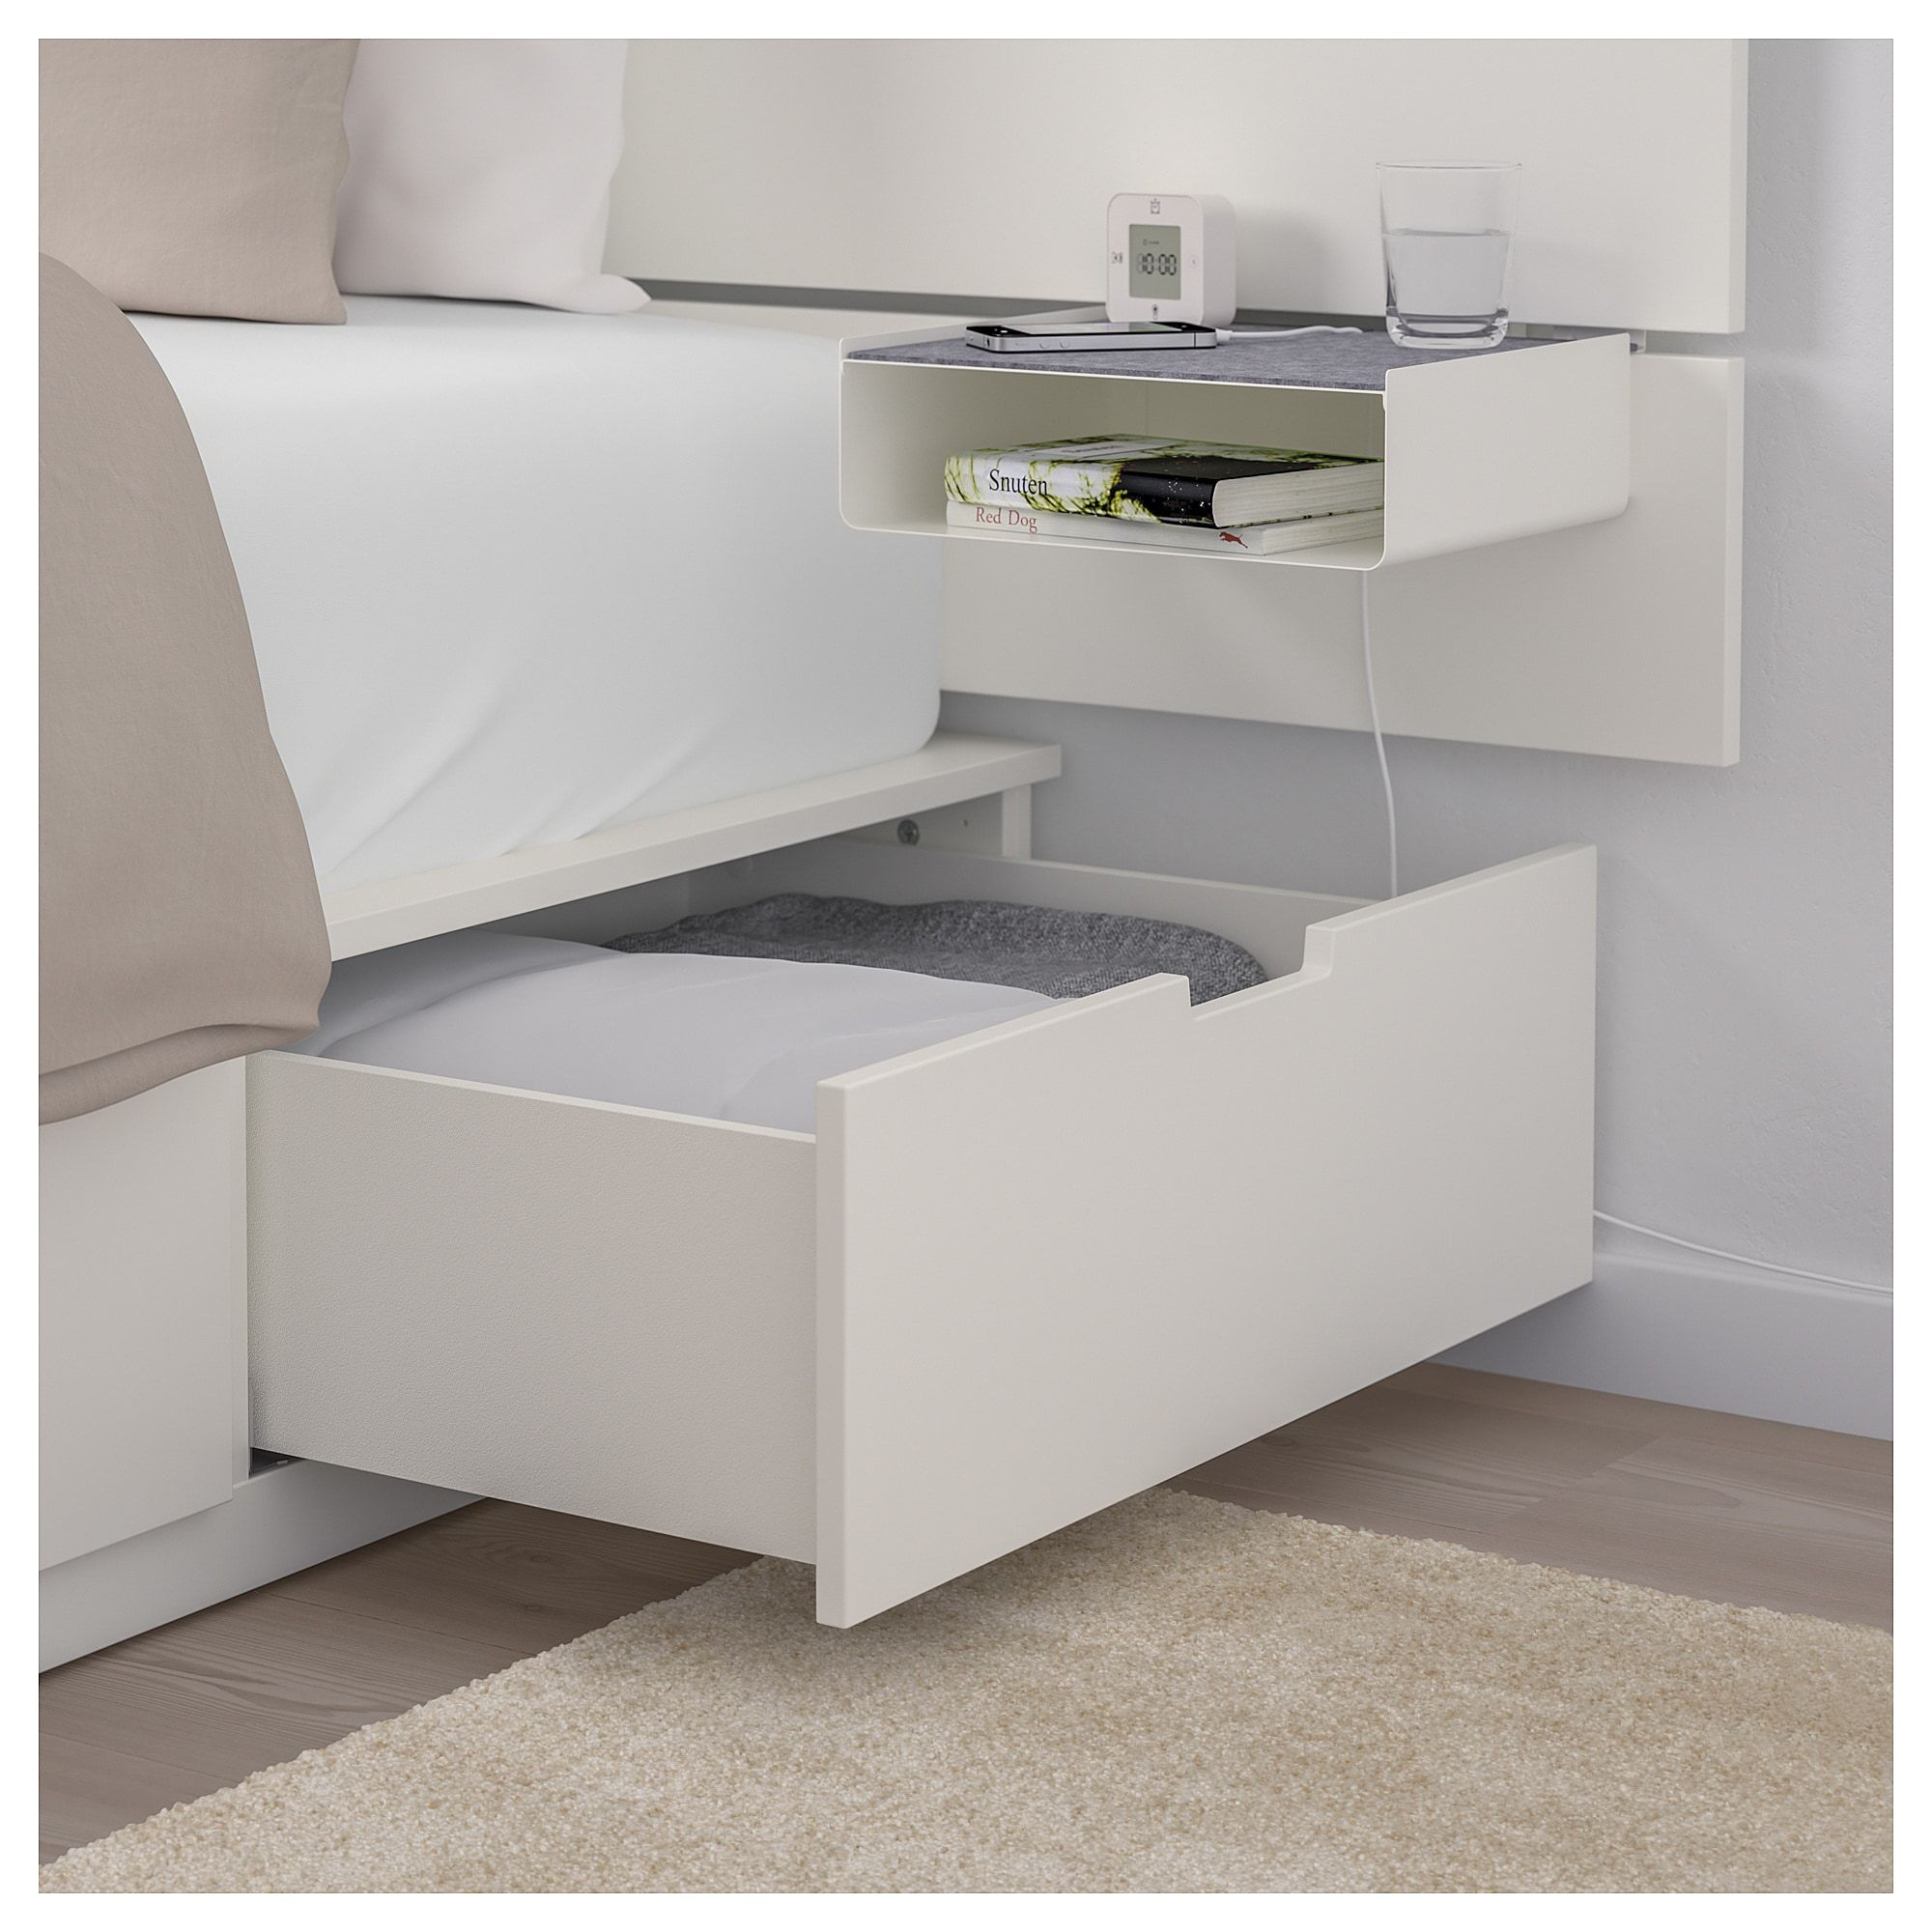 Ikea Mandal Headboard Canada Ikea - Nordli Bed With Headboard And Storage White In 2019